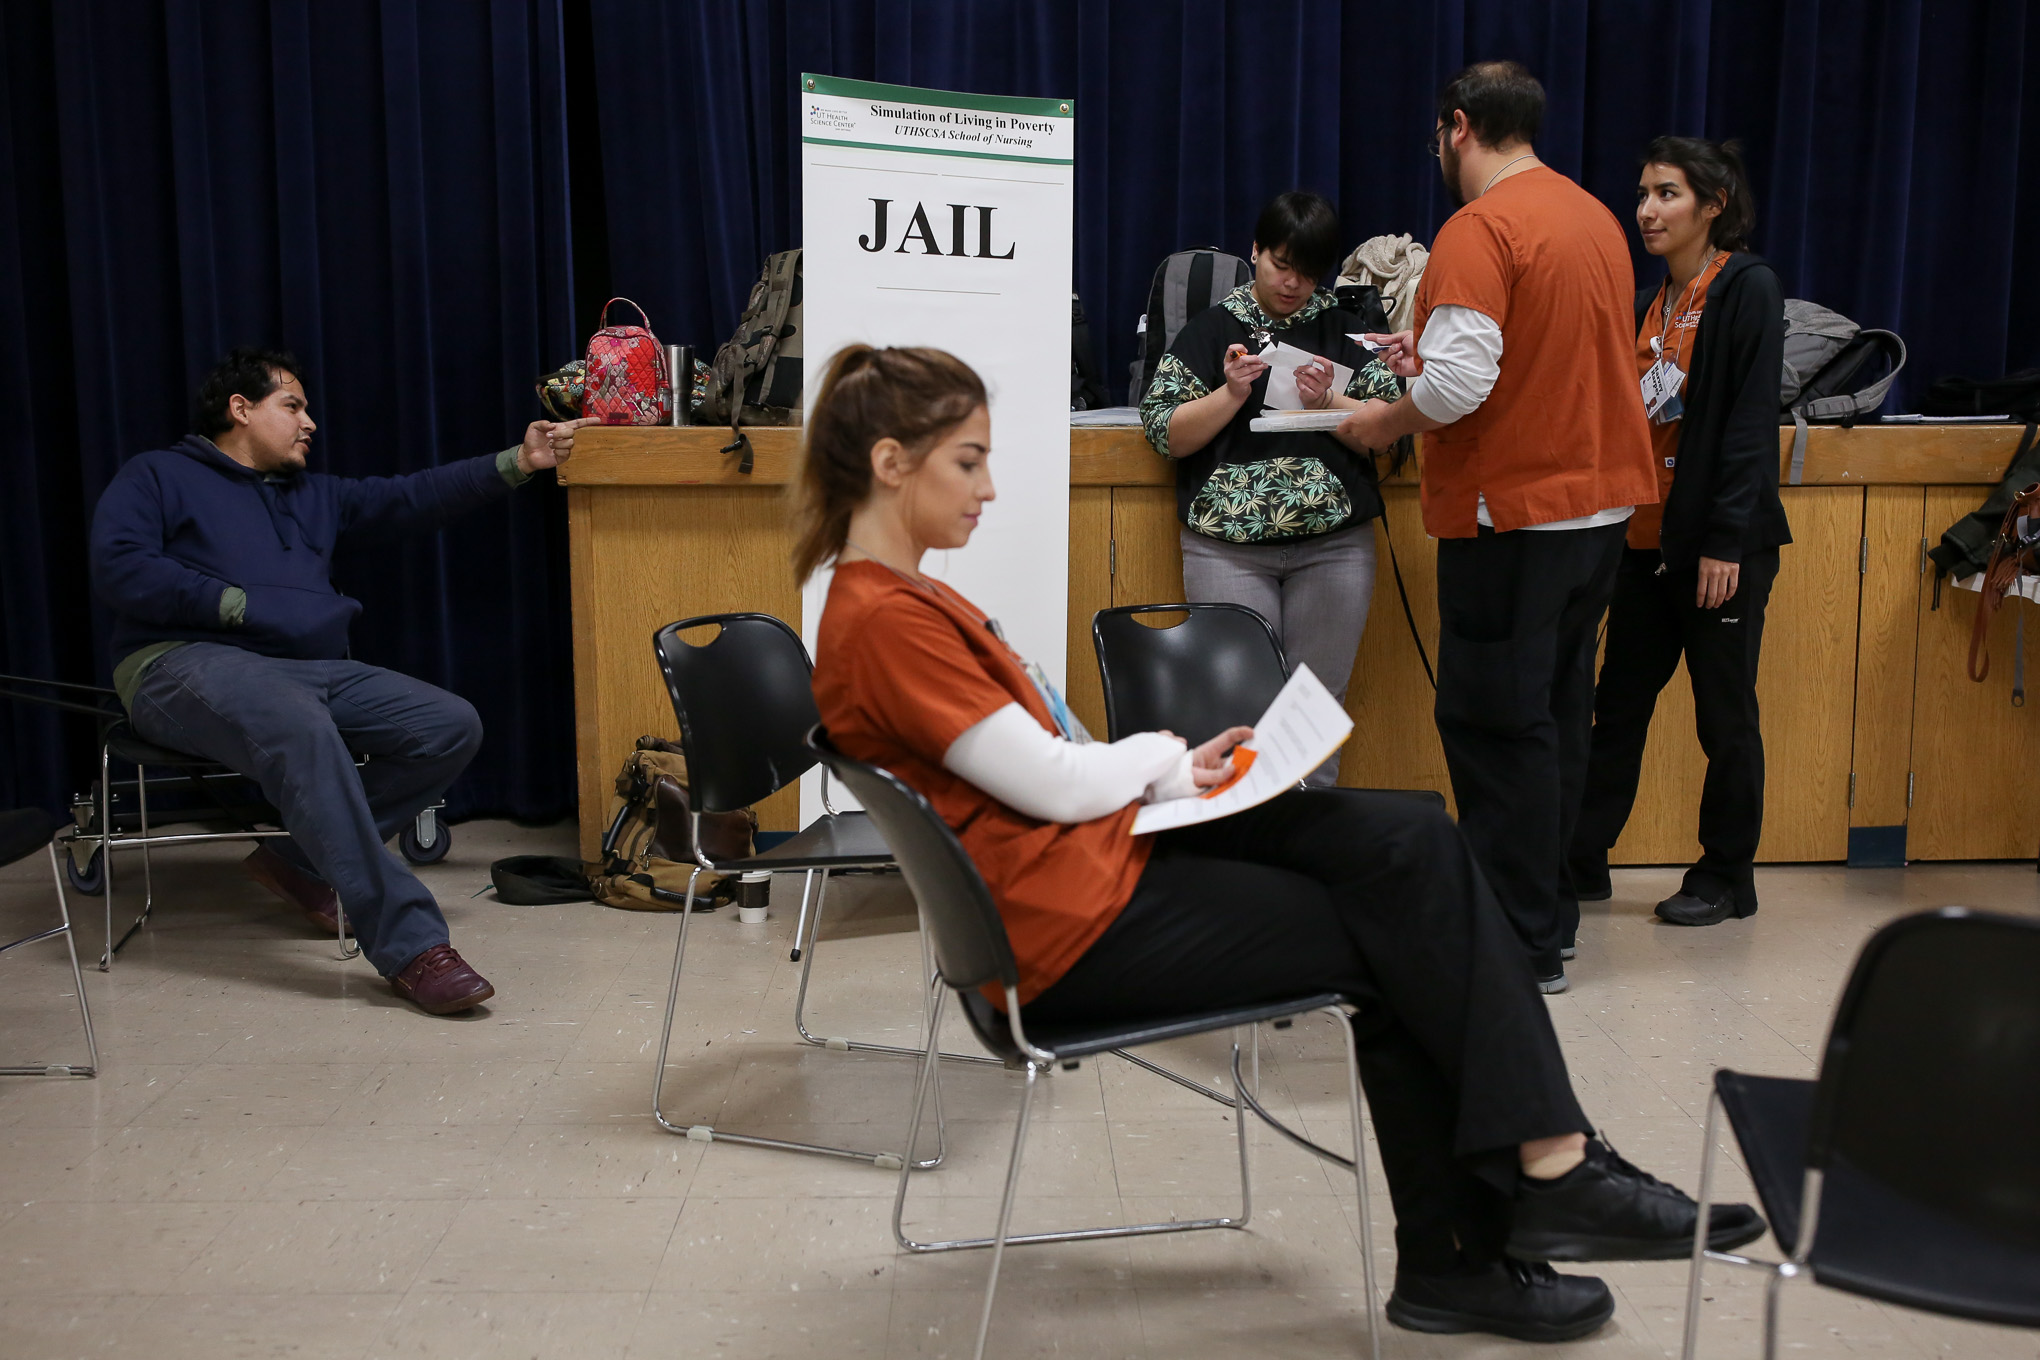 Students sit and administer jail as a the thief (left) points to a victim of his theft.